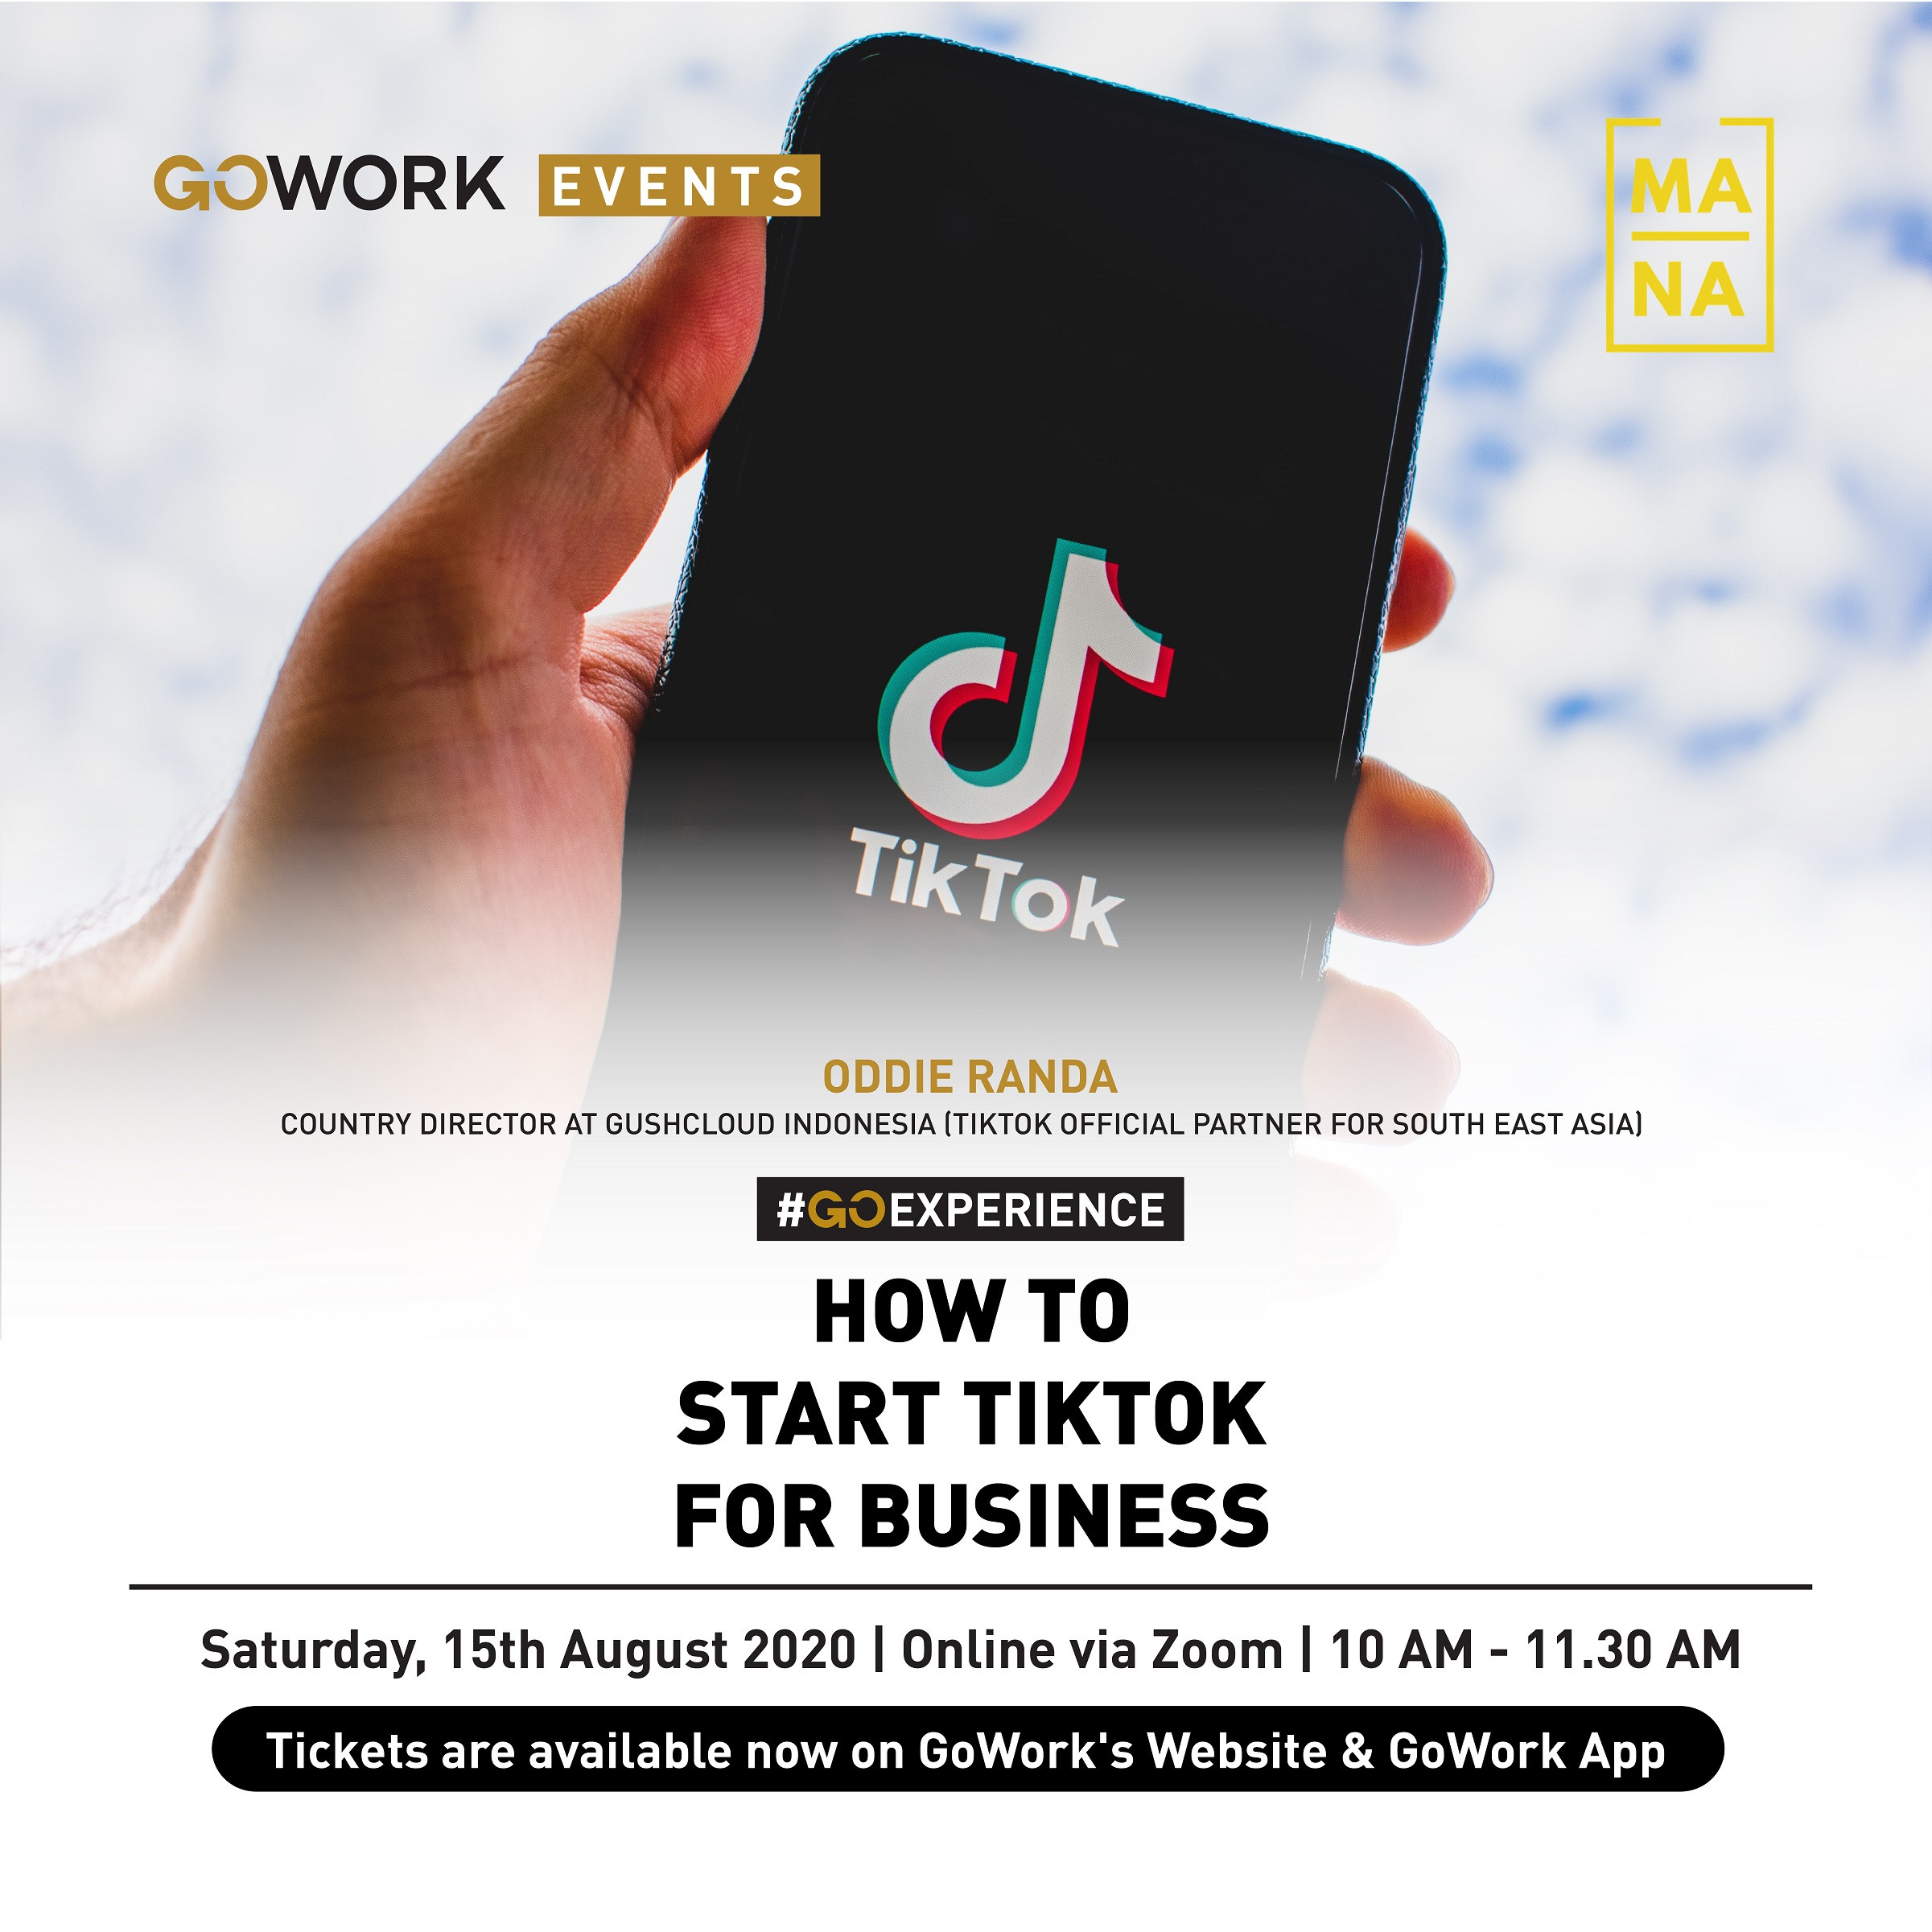 How to Start TikTok for Business